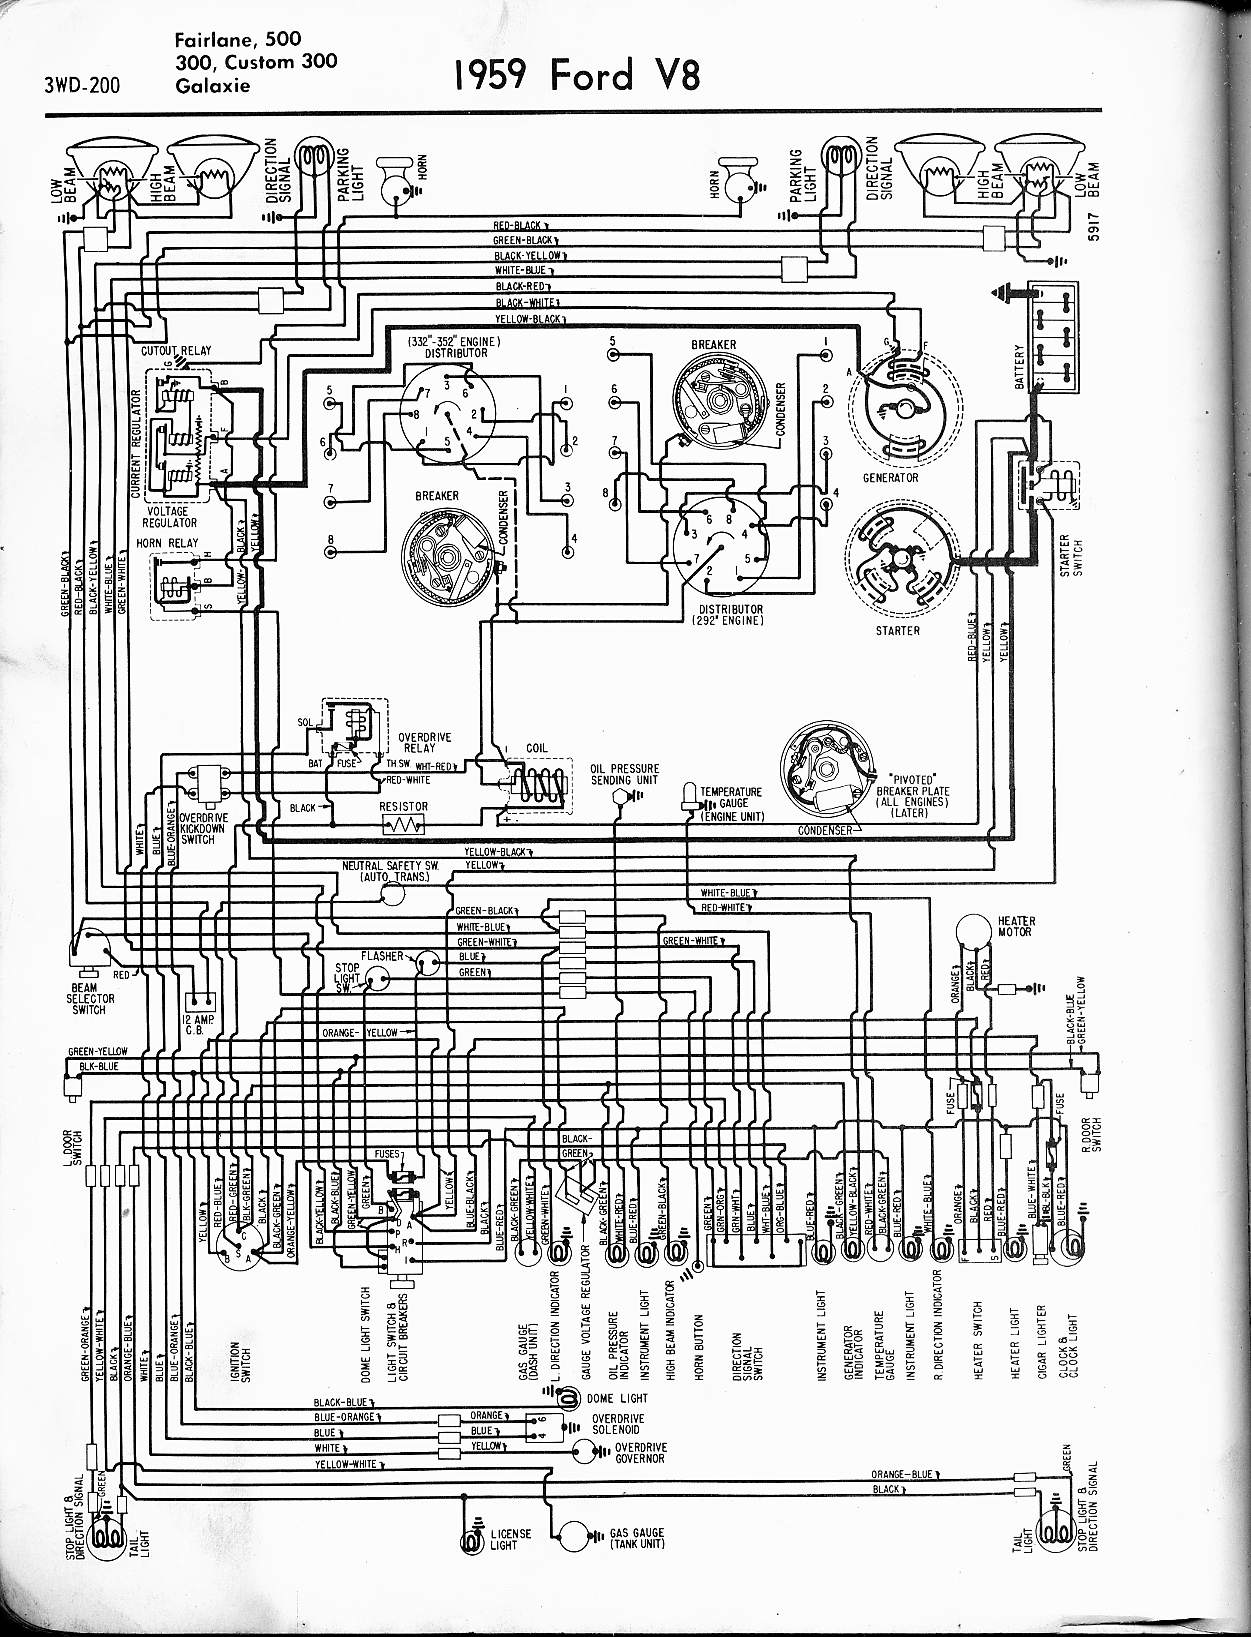 MWire5765 200 57 65 ford wiring diagrams ford wiring schematics at fashall.co